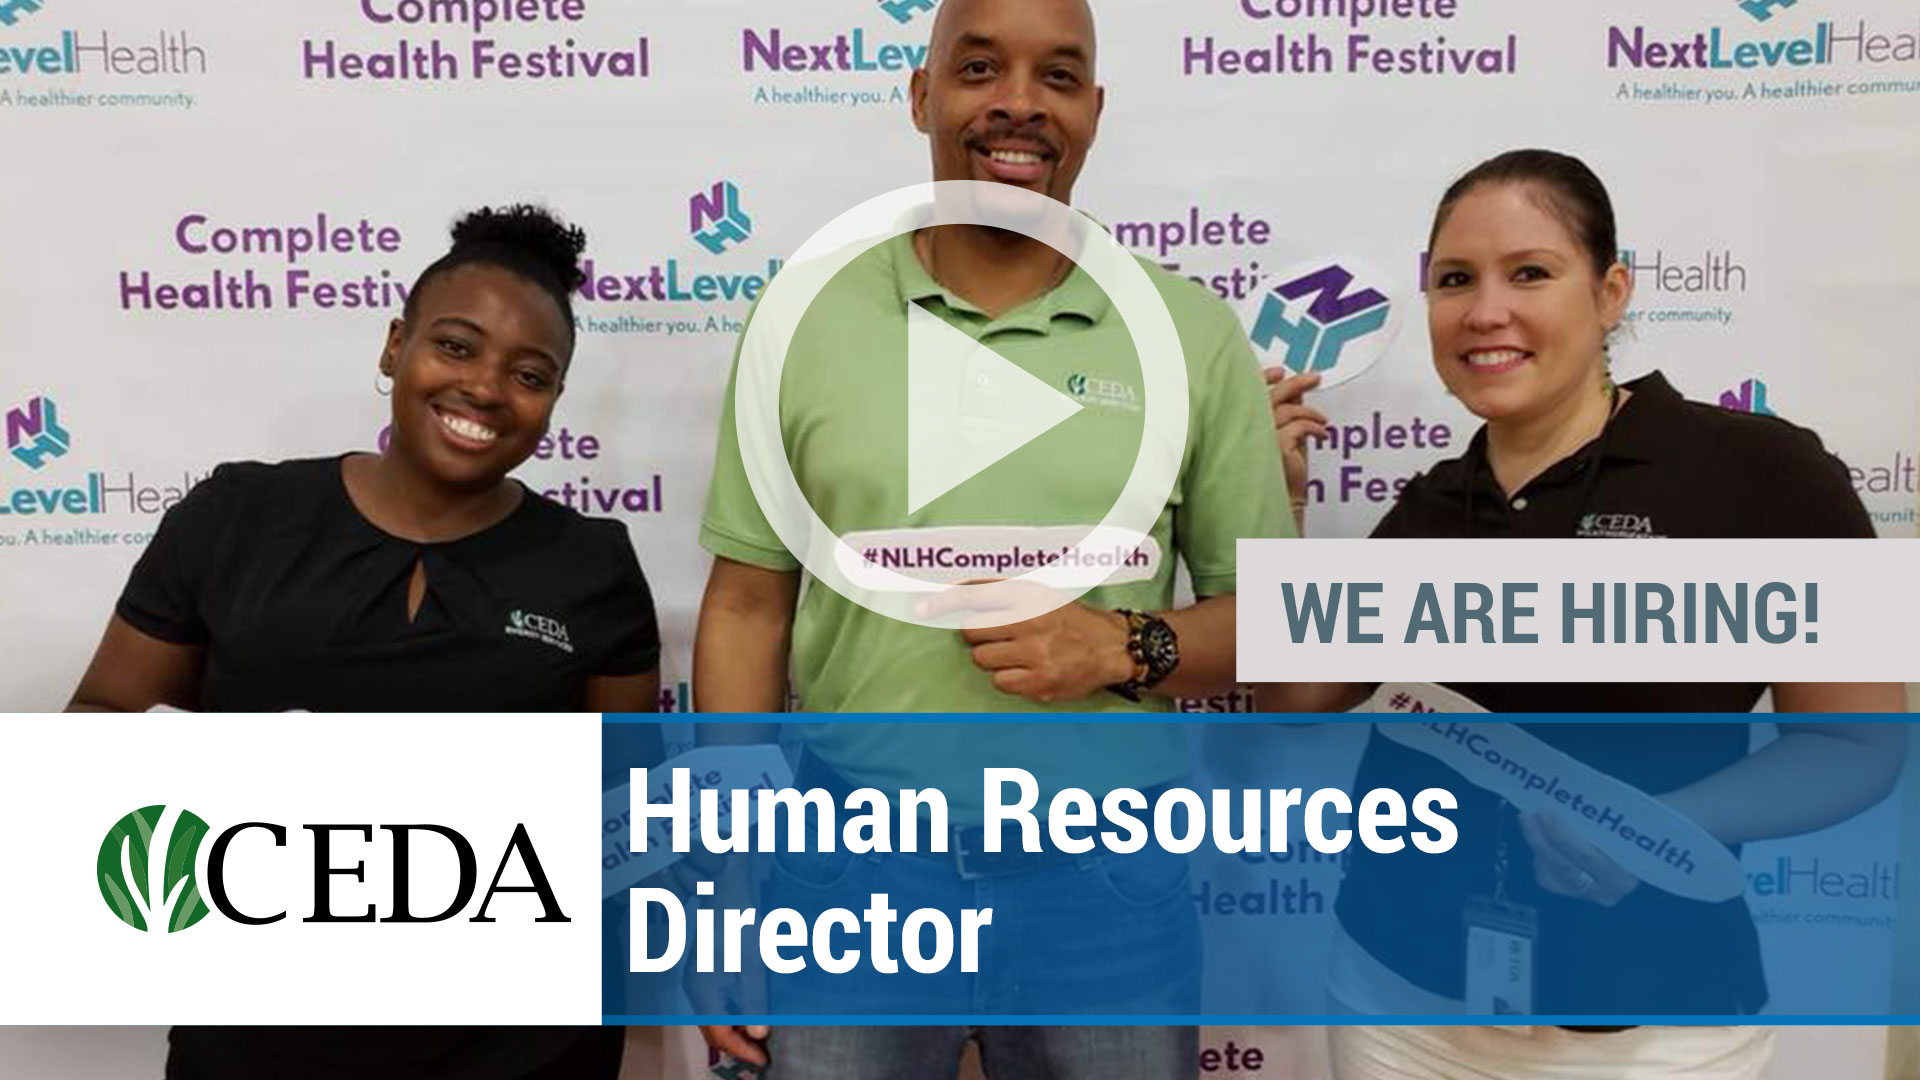 Watch our careers video for available job opening CEDA Human Resources Director in Chicago, IL, USA